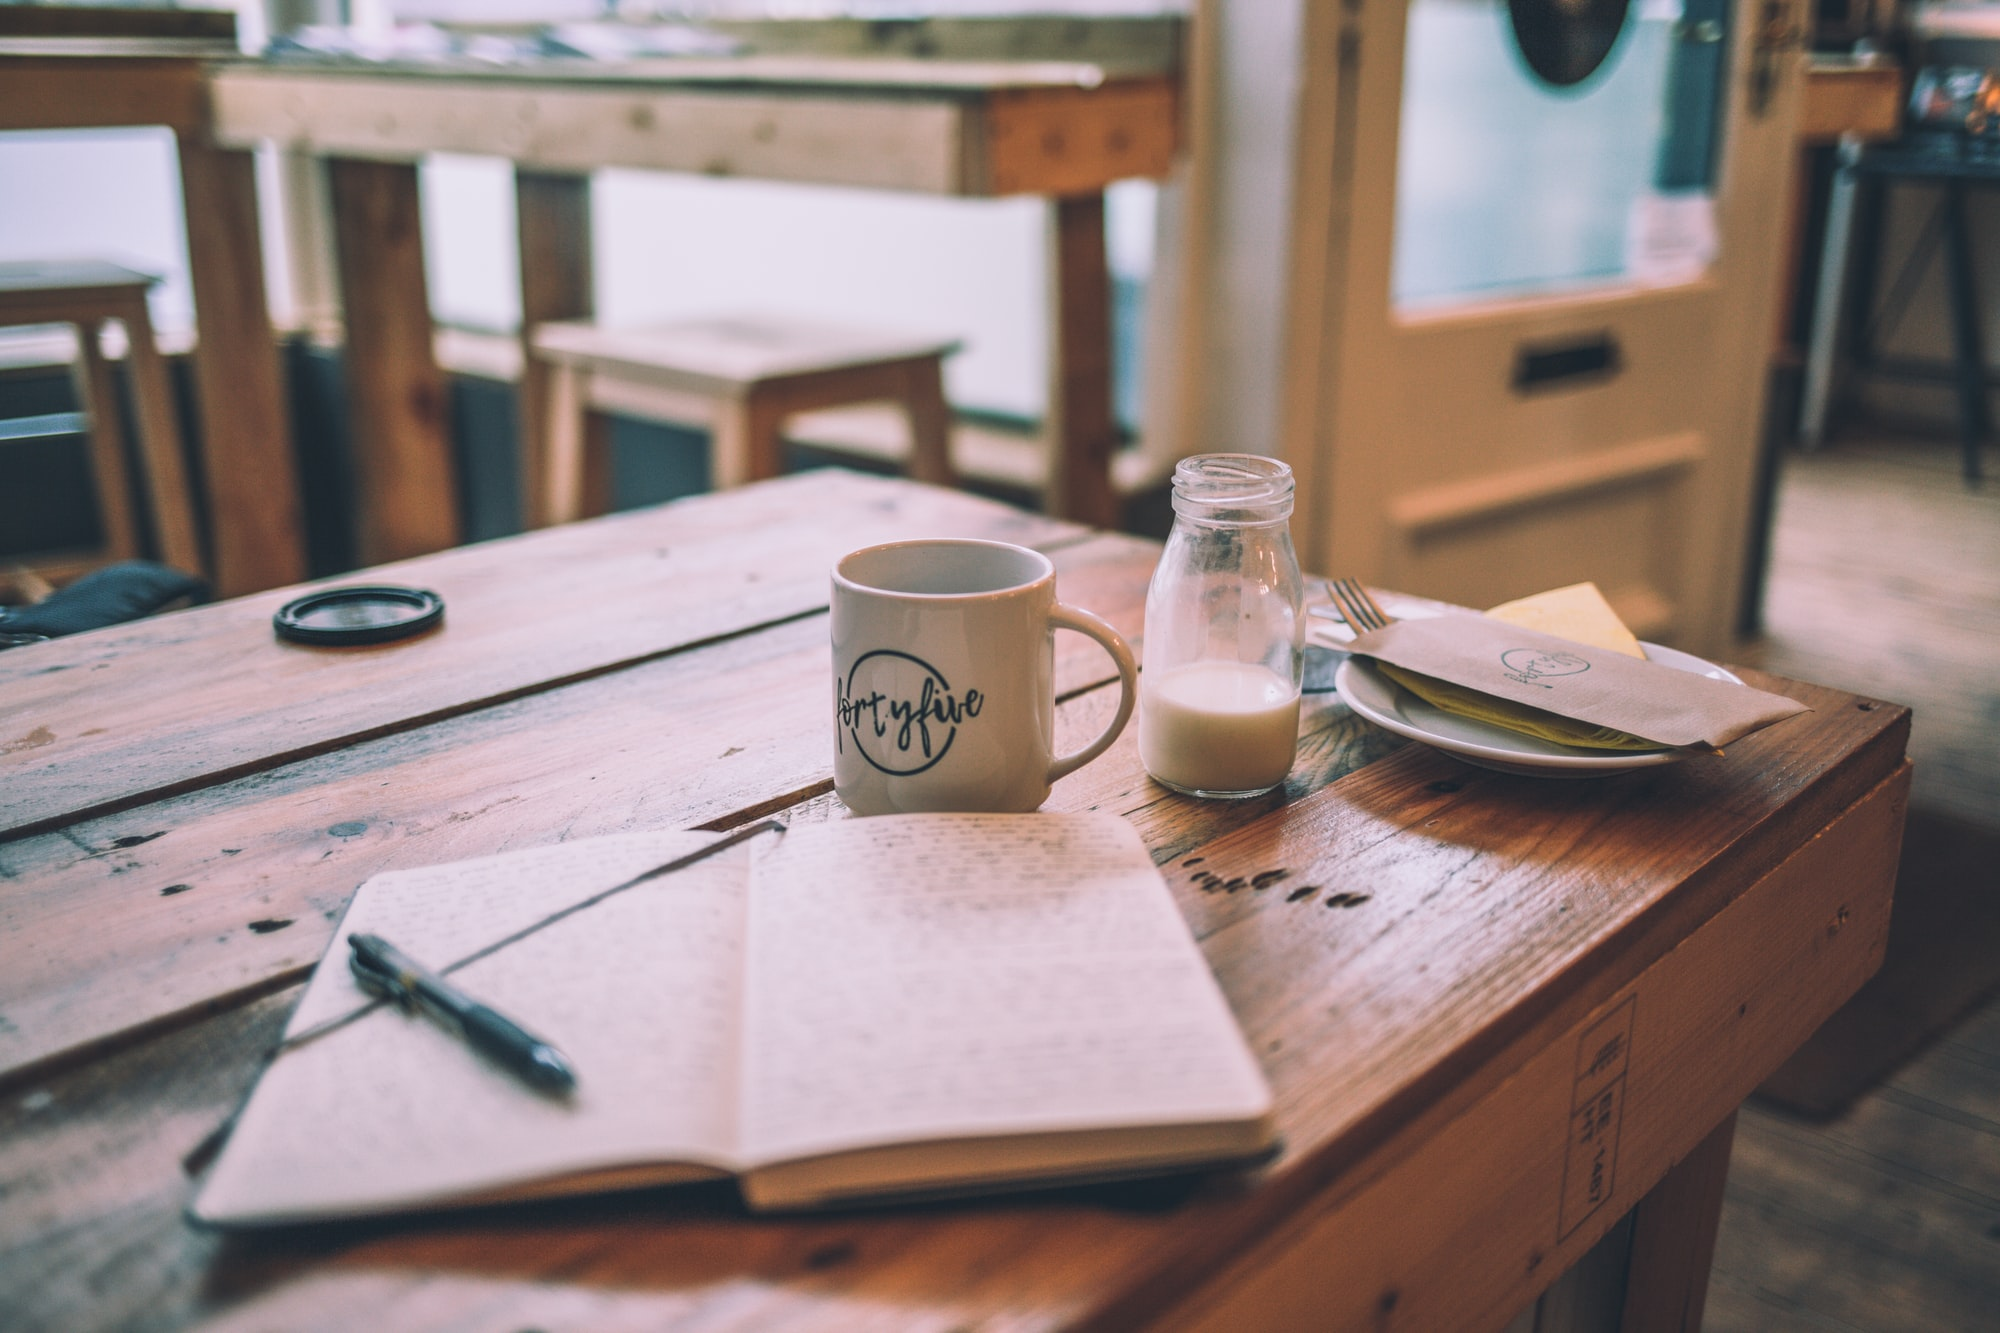 Working from coffee shop